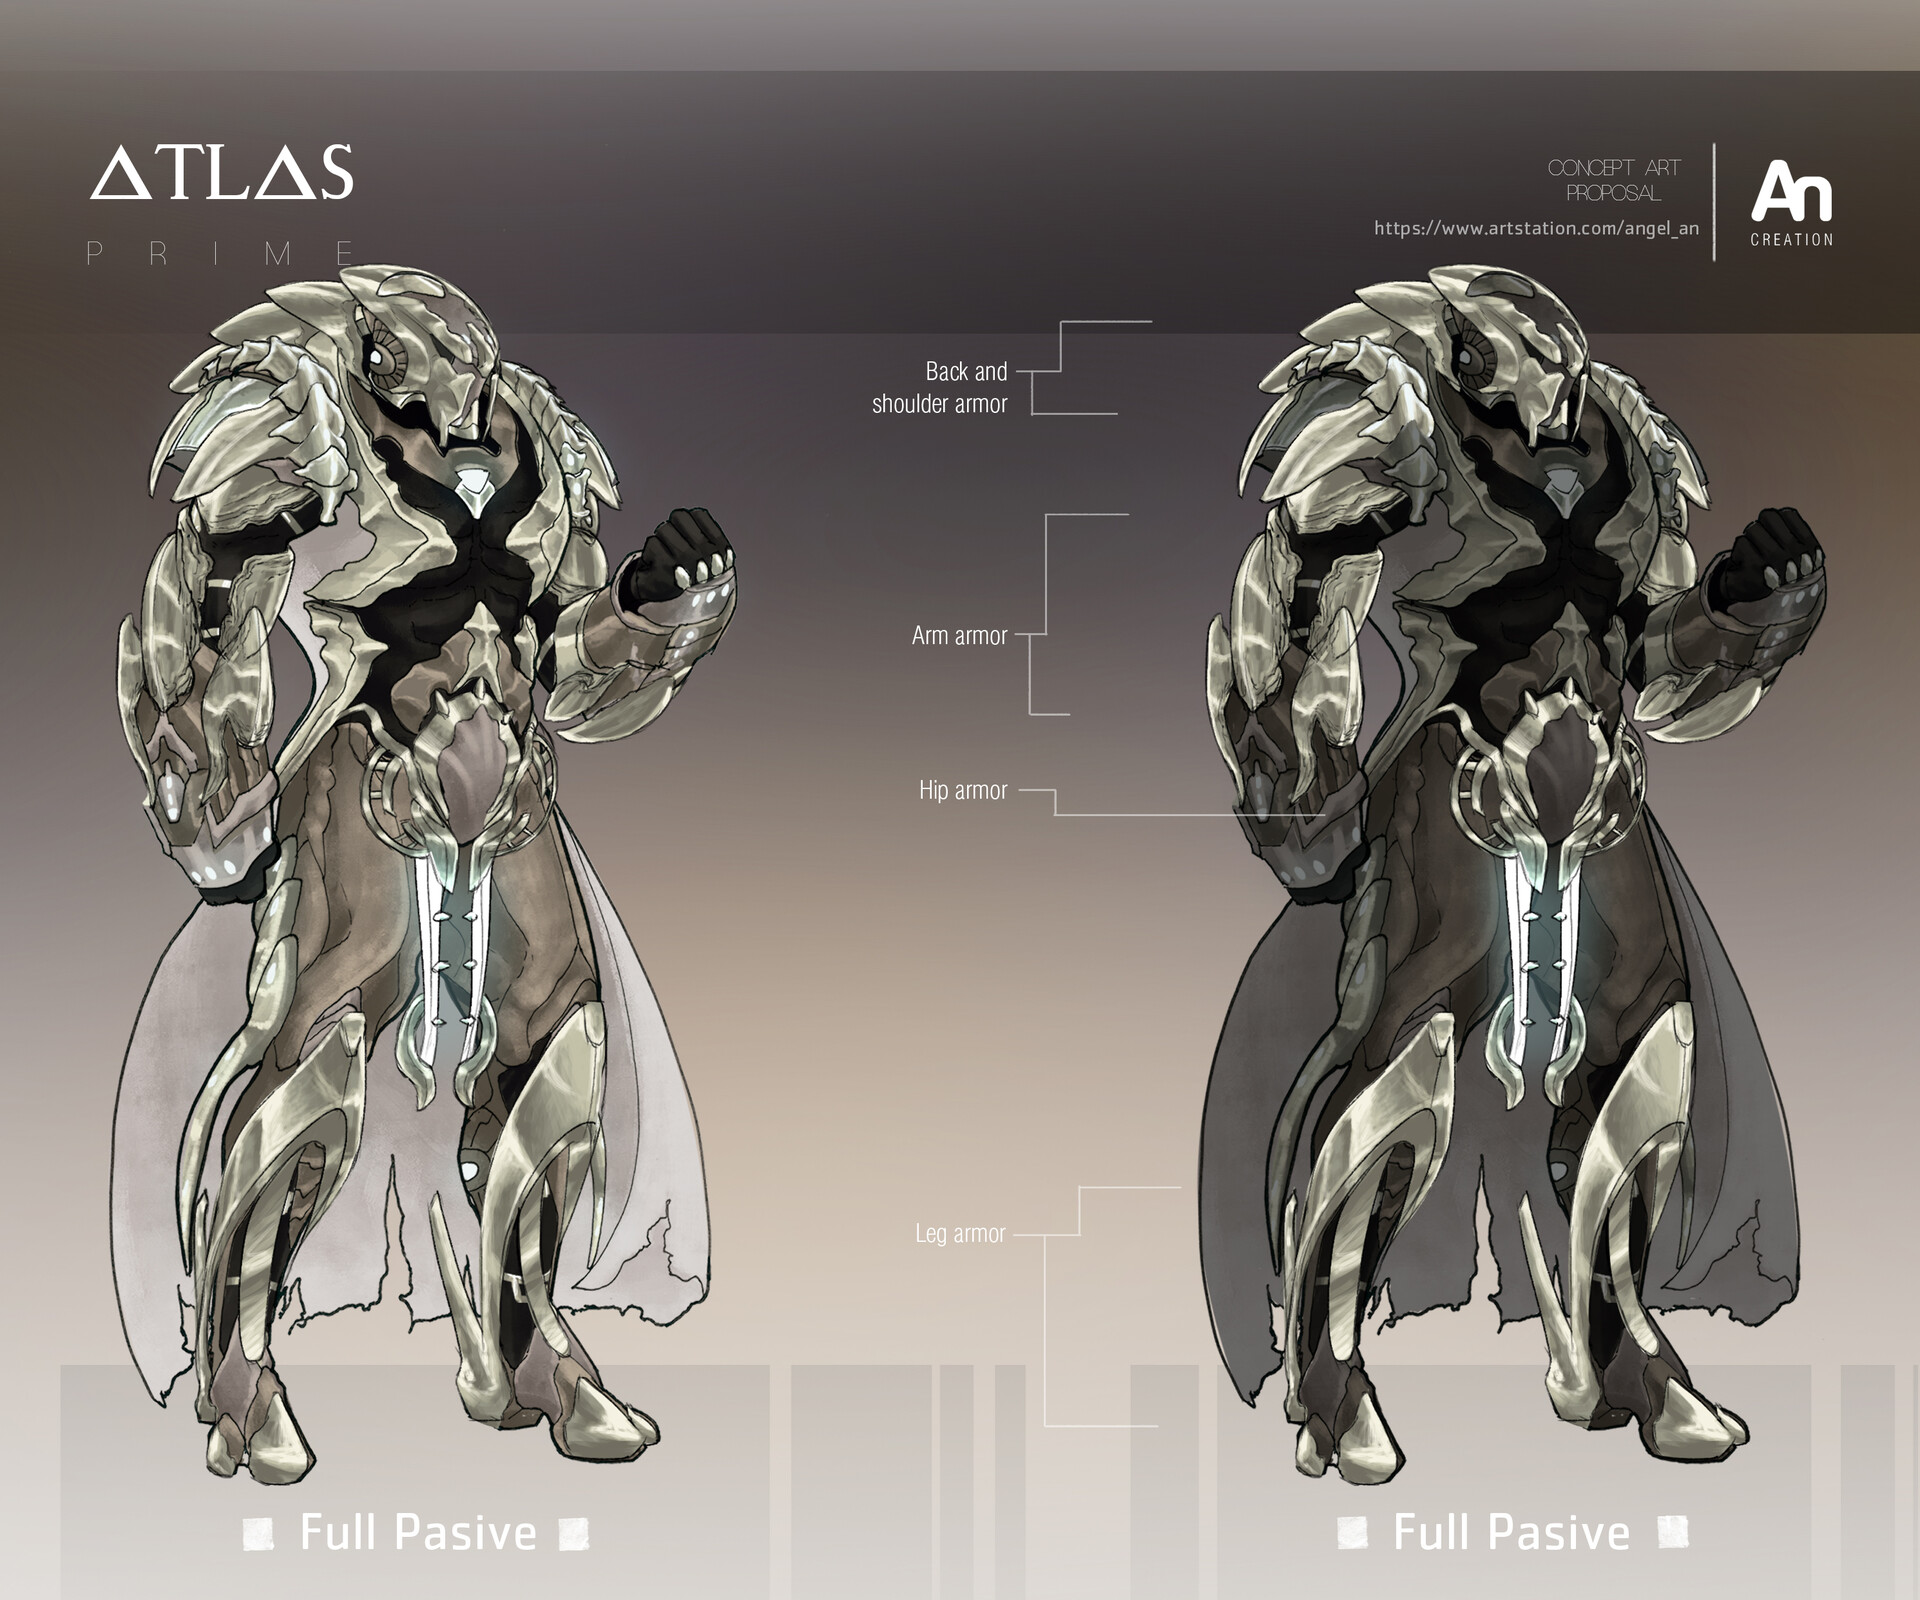 Since Atlas Prime Got A Different Visual General Discussion Warframe Forums Warframe deluxe skin concept art for the atlas warframe. since atlas prime got a different